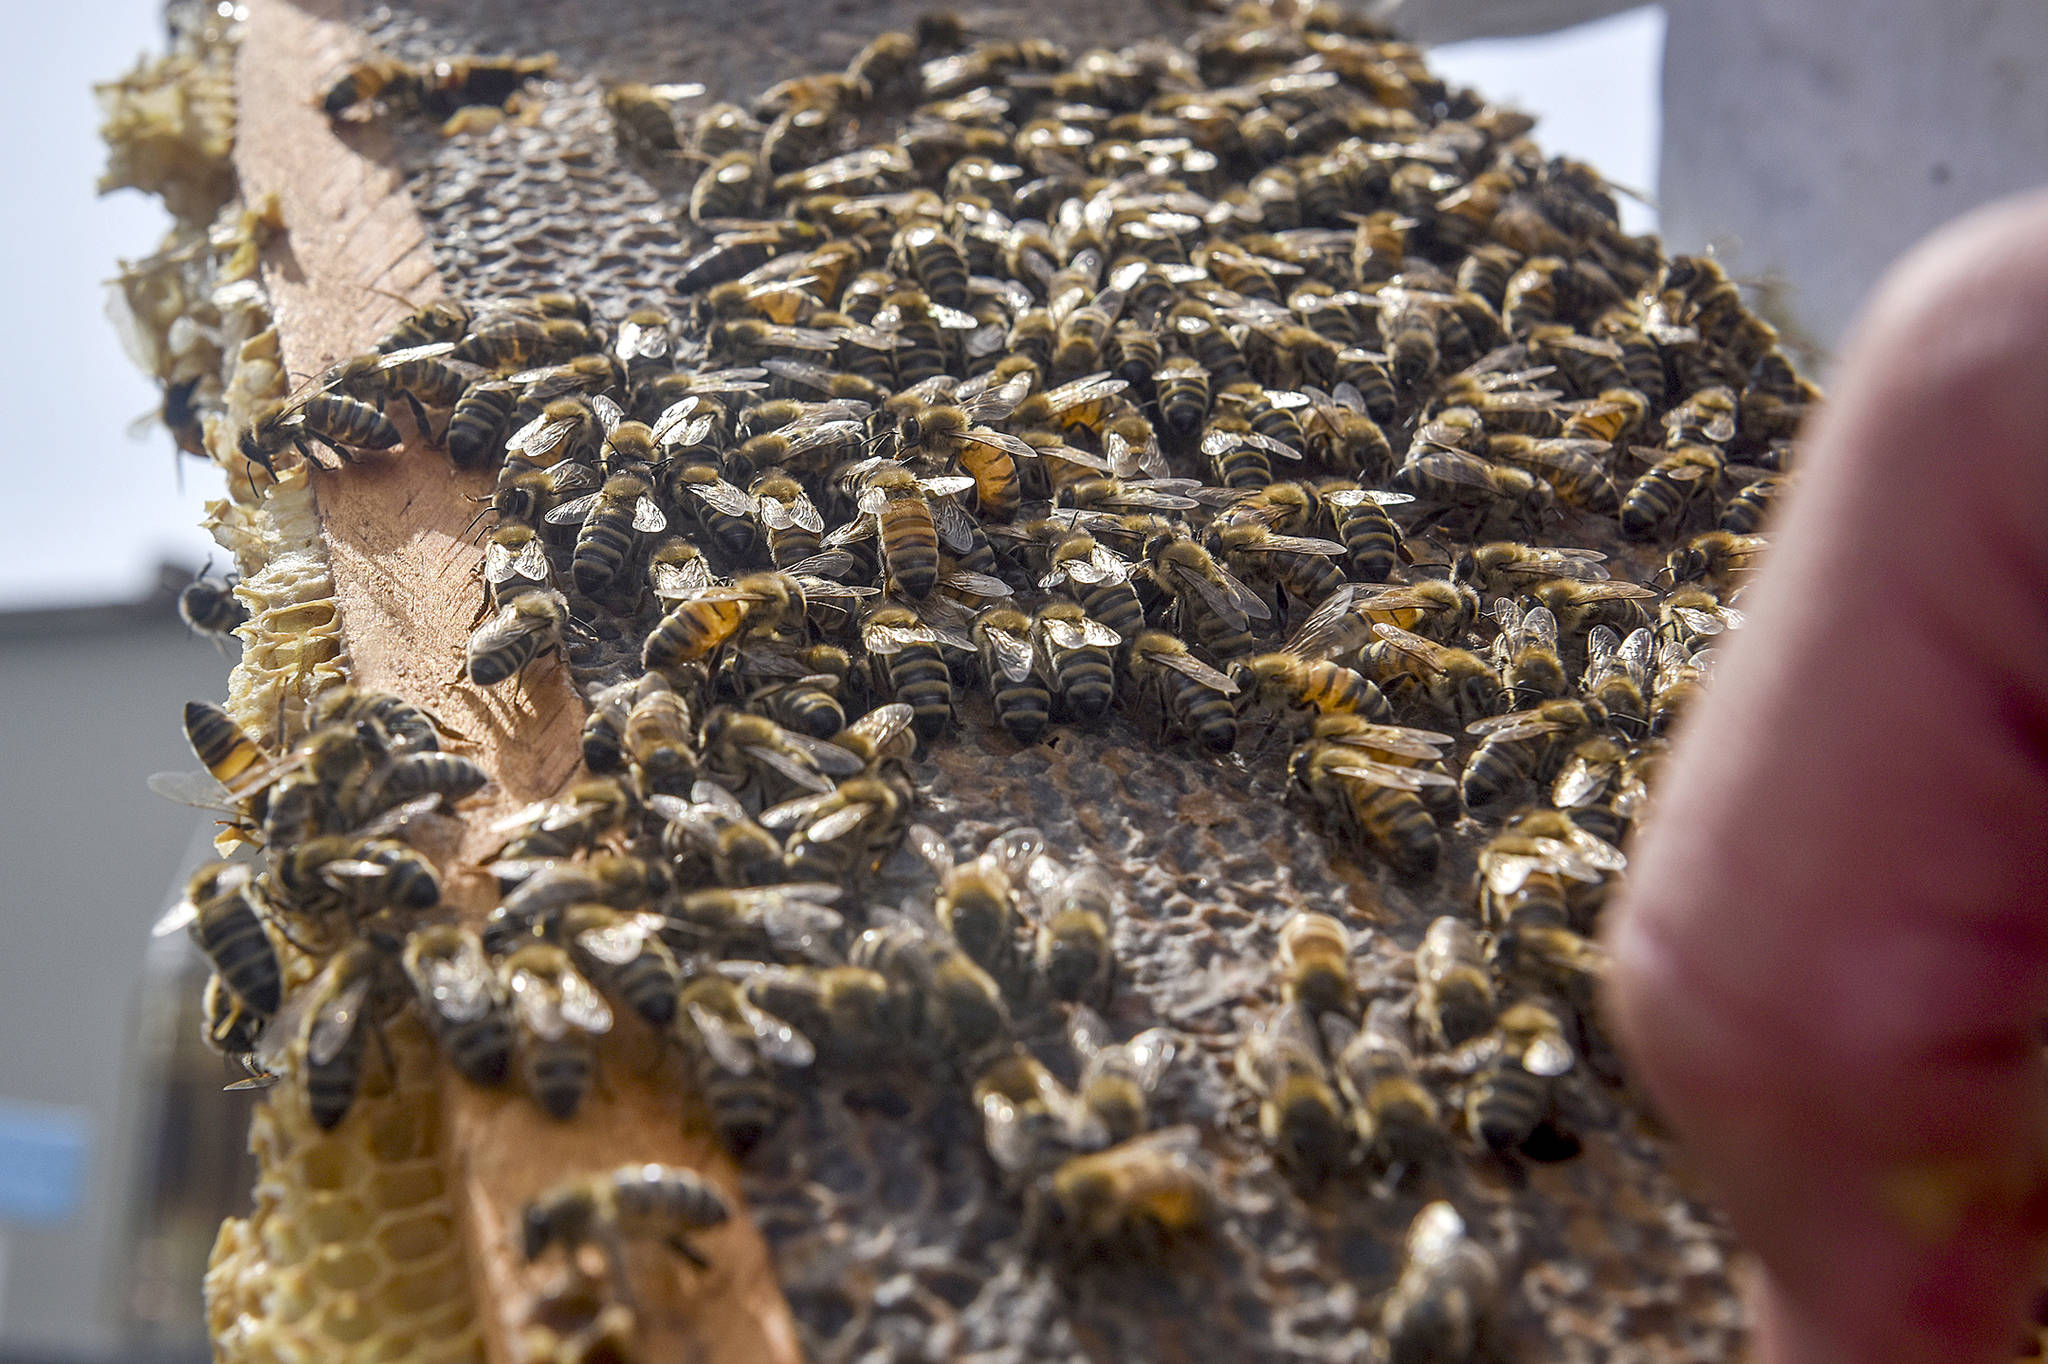 Toni Burnham, president of DC Beekeepers Alliance, checks on the health of a honey bee colony where DC Water keeps four beehives on the rooftop of one of its buildings, on , June 22, 2017 in Washington. (Washington Post photo by Jahi Chikwendiu)